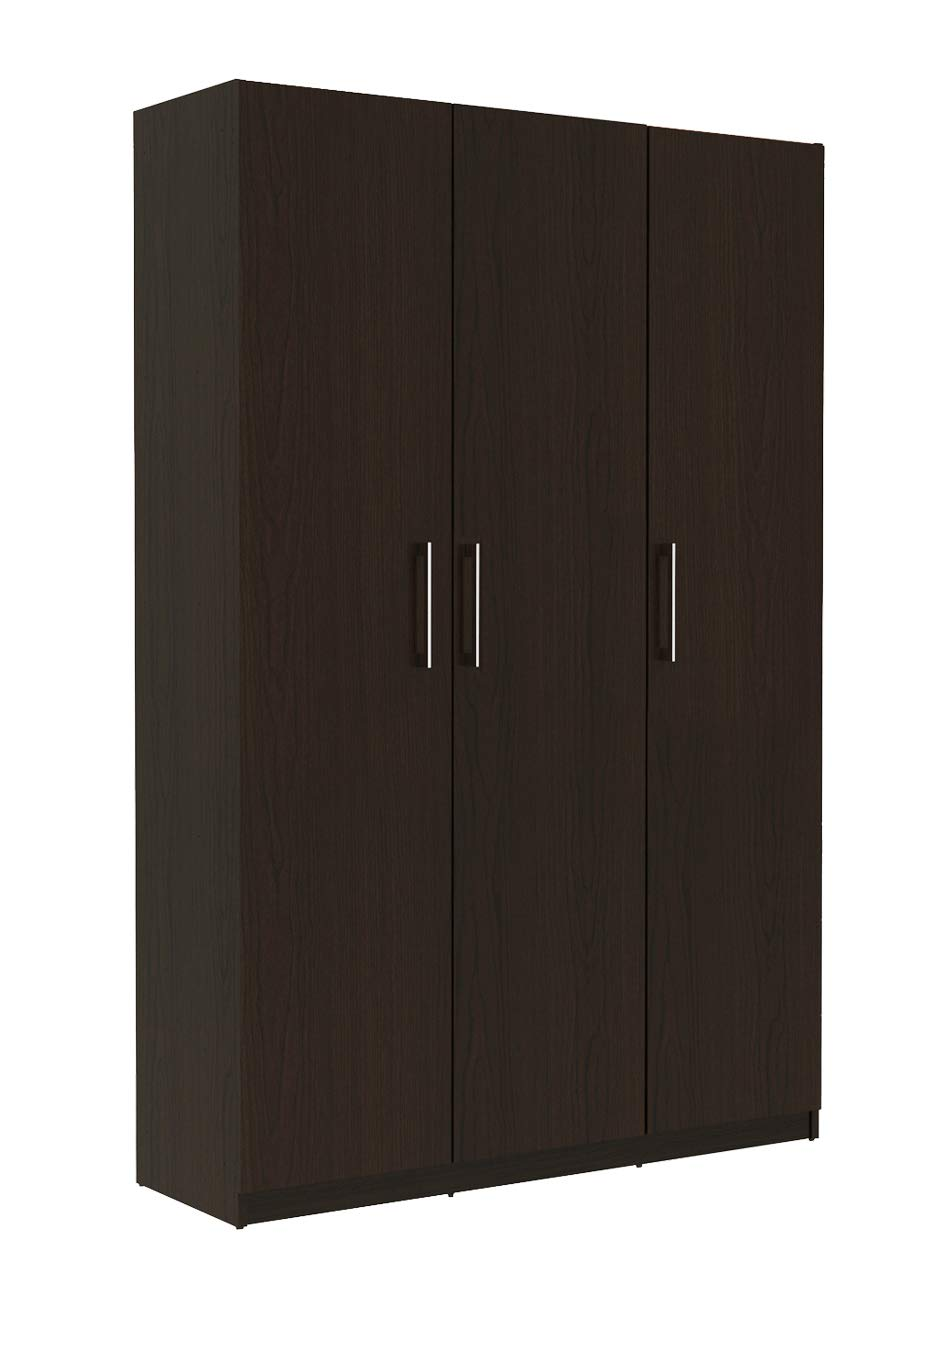 3 Door Wardrobe 5 Shelves Bedroom Cupboard Large Storage Space 1 Metre Wide (White) Riana